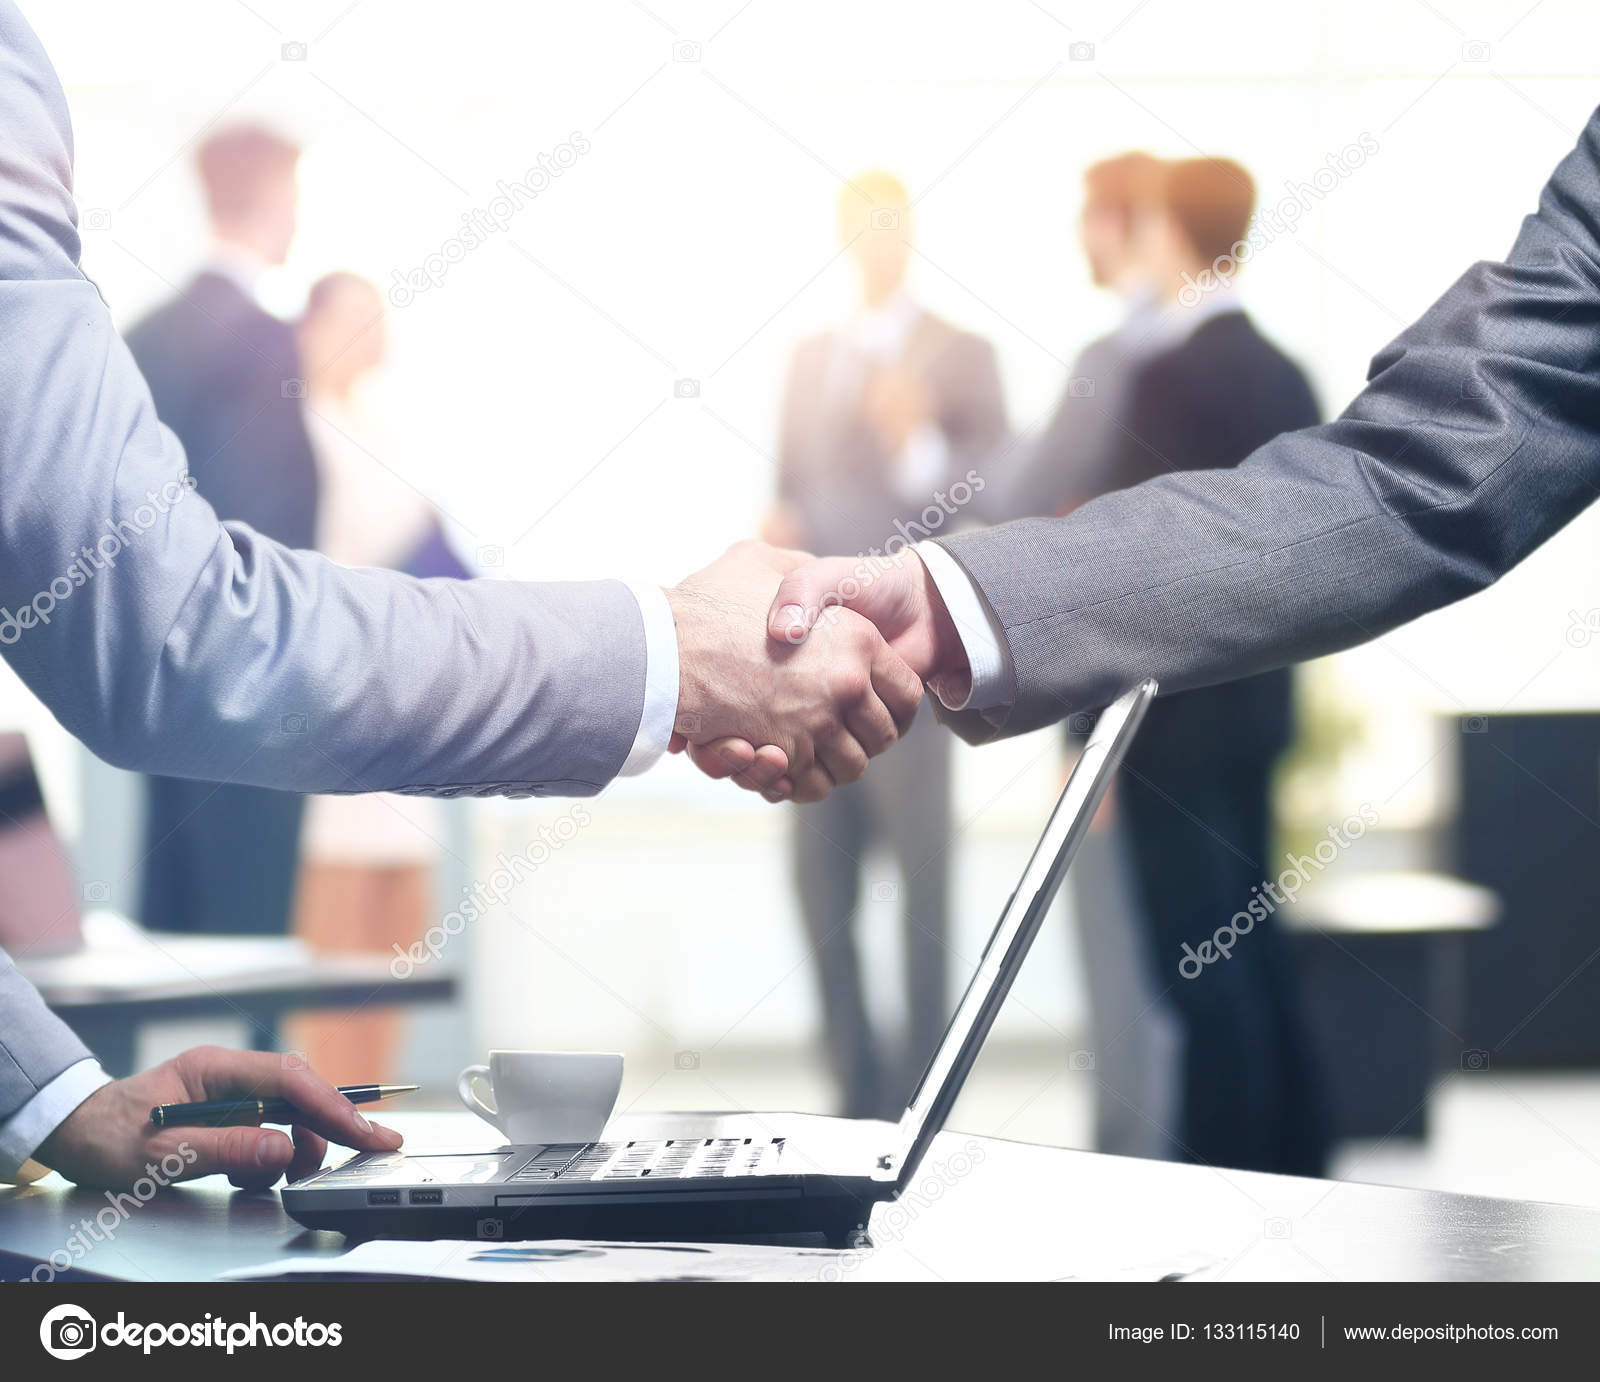 Business people handshake greeting deal at work photo free download - Confident Business Handshake Close Up View Of A Handshake Business Office In Formal Wear And Work At A Laptop Stock Image